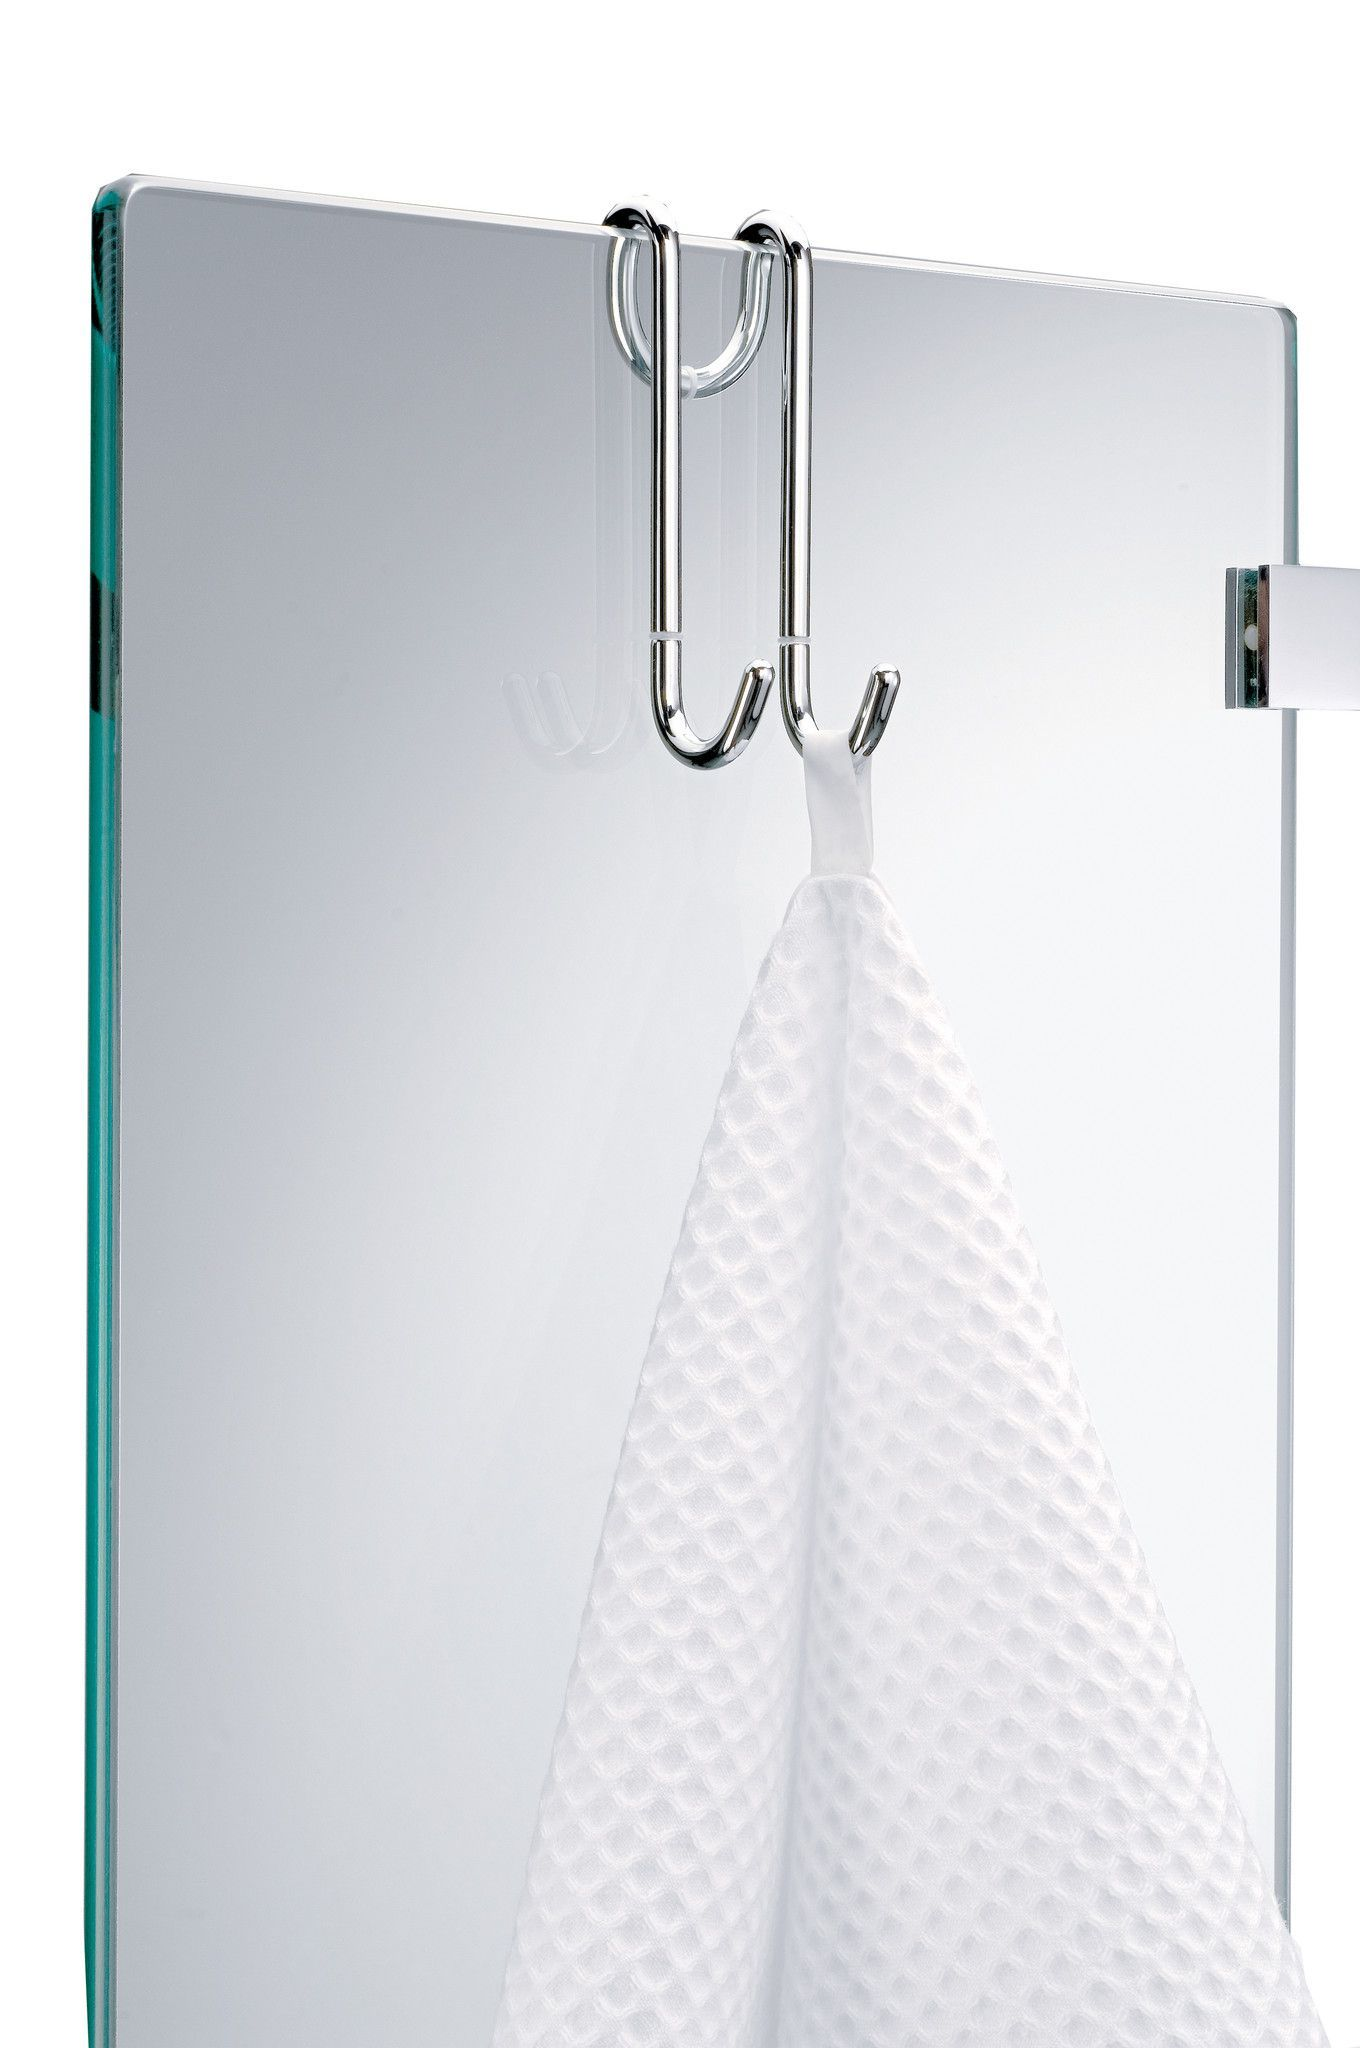 Dh 1 Small Hanging Hook For Bathroom Shower Glass Doors And